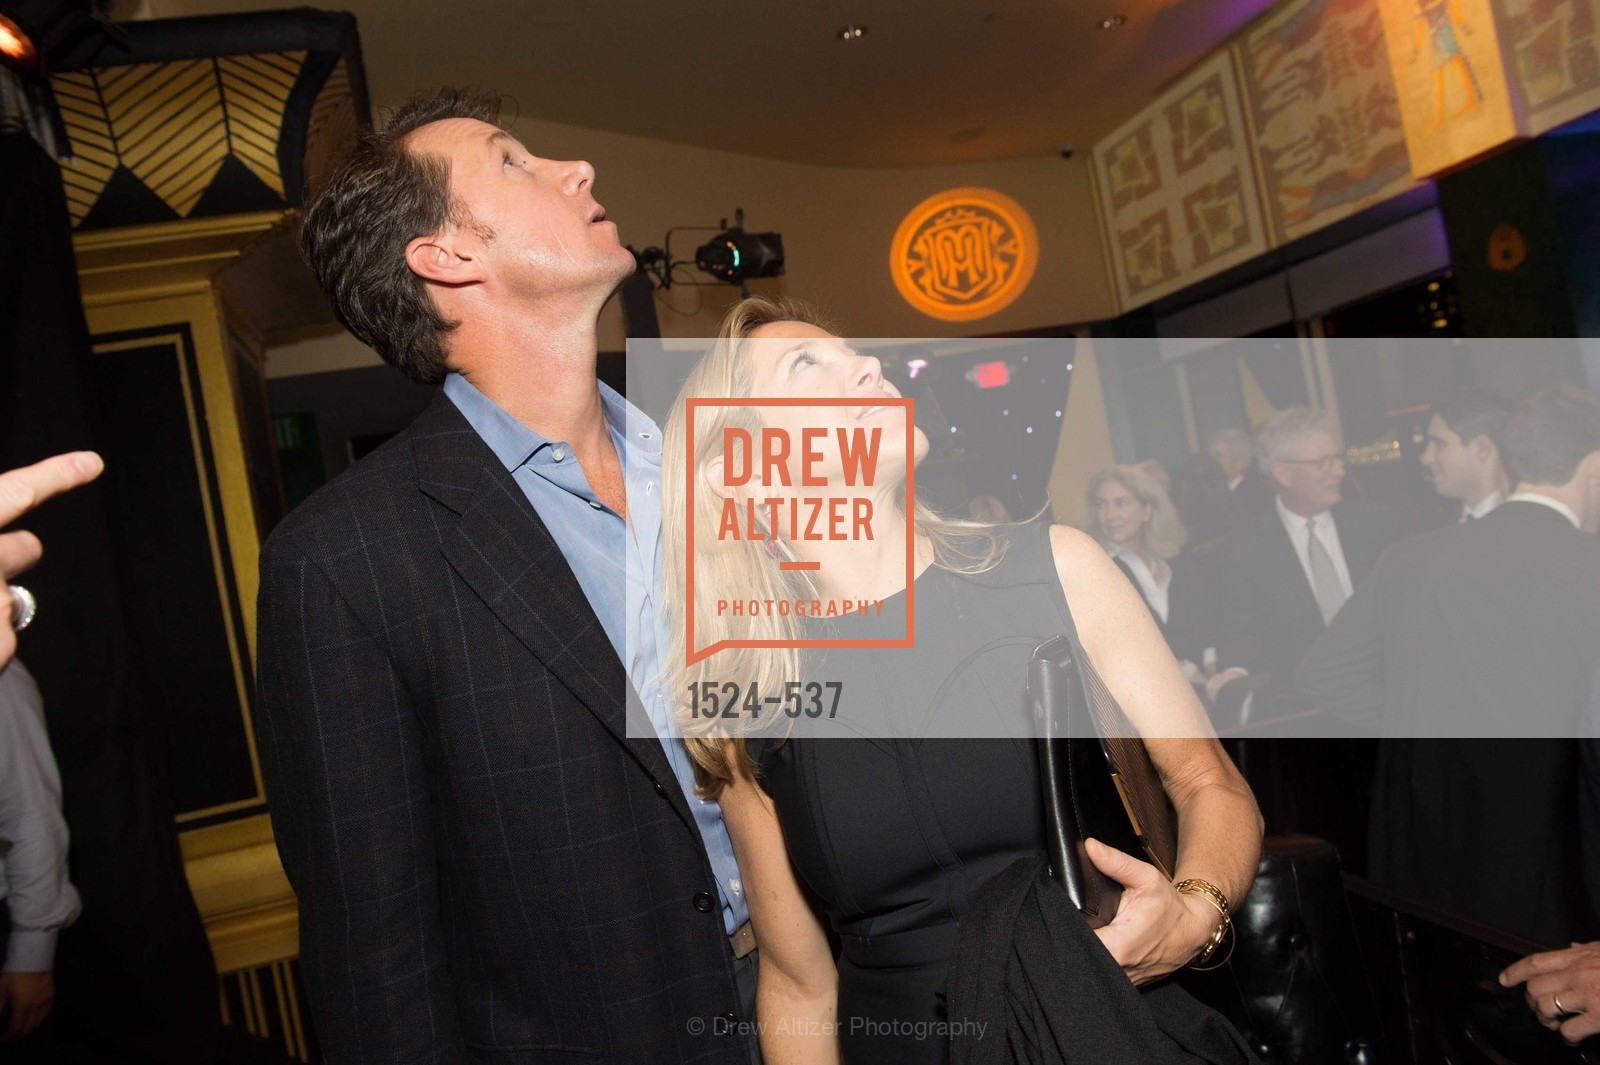 Bo Lasater, Kathryn Lasater, TOP OF THE MARK'S 75TH Anniversary Party, US, November 7th, 2014,Drew Altizer, Drew Altizer Photography, full-service event agency, private events, San Francisco photographer, photographer California